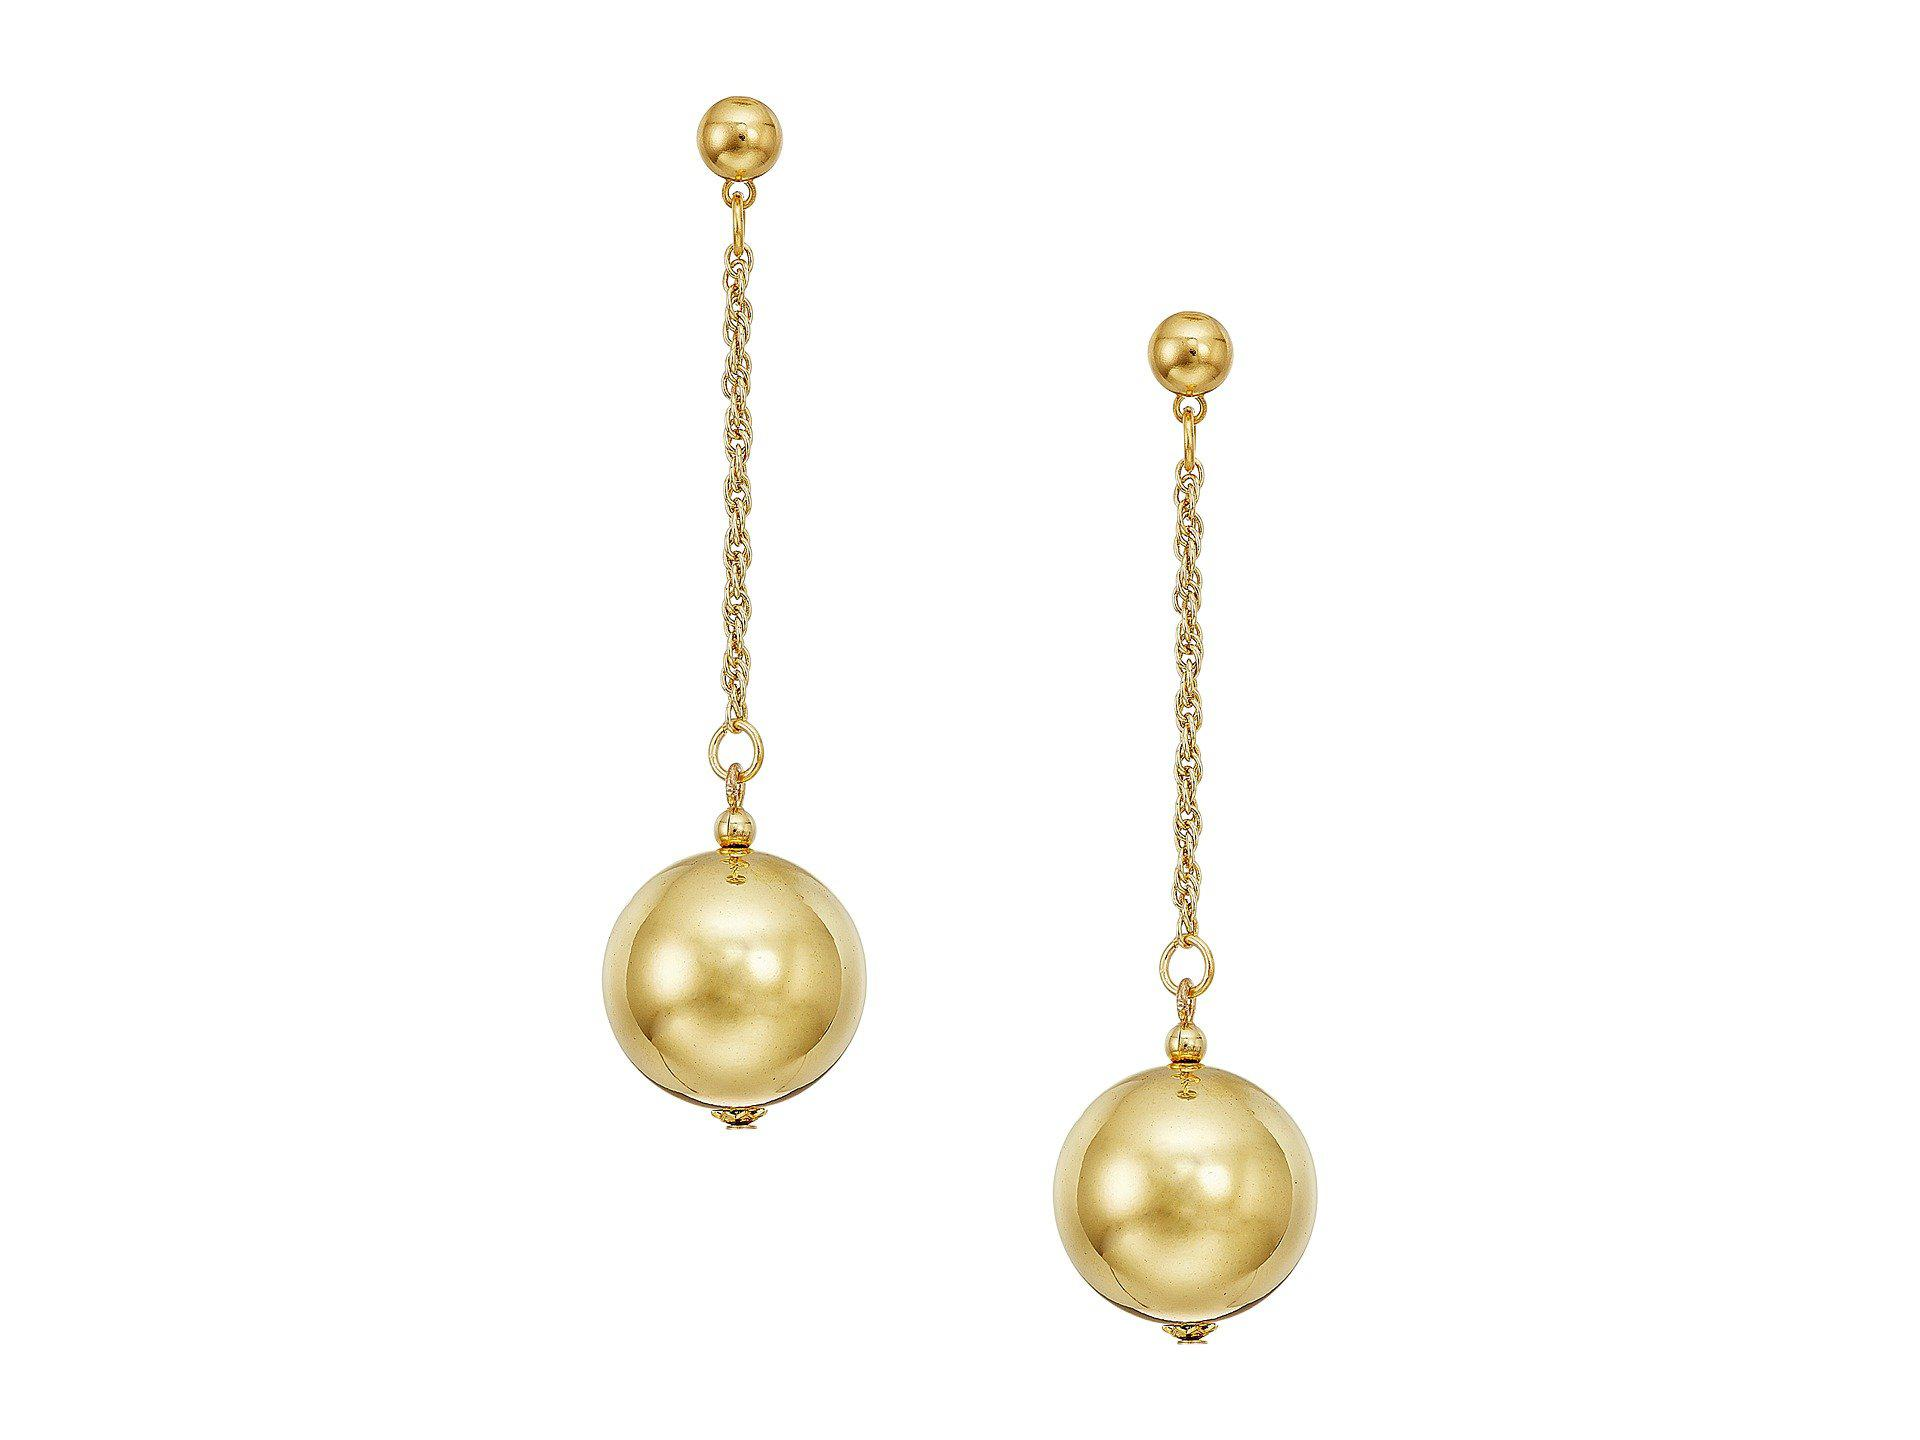 Kenneth Jay Lane Gold Flower Earrings Polished gold